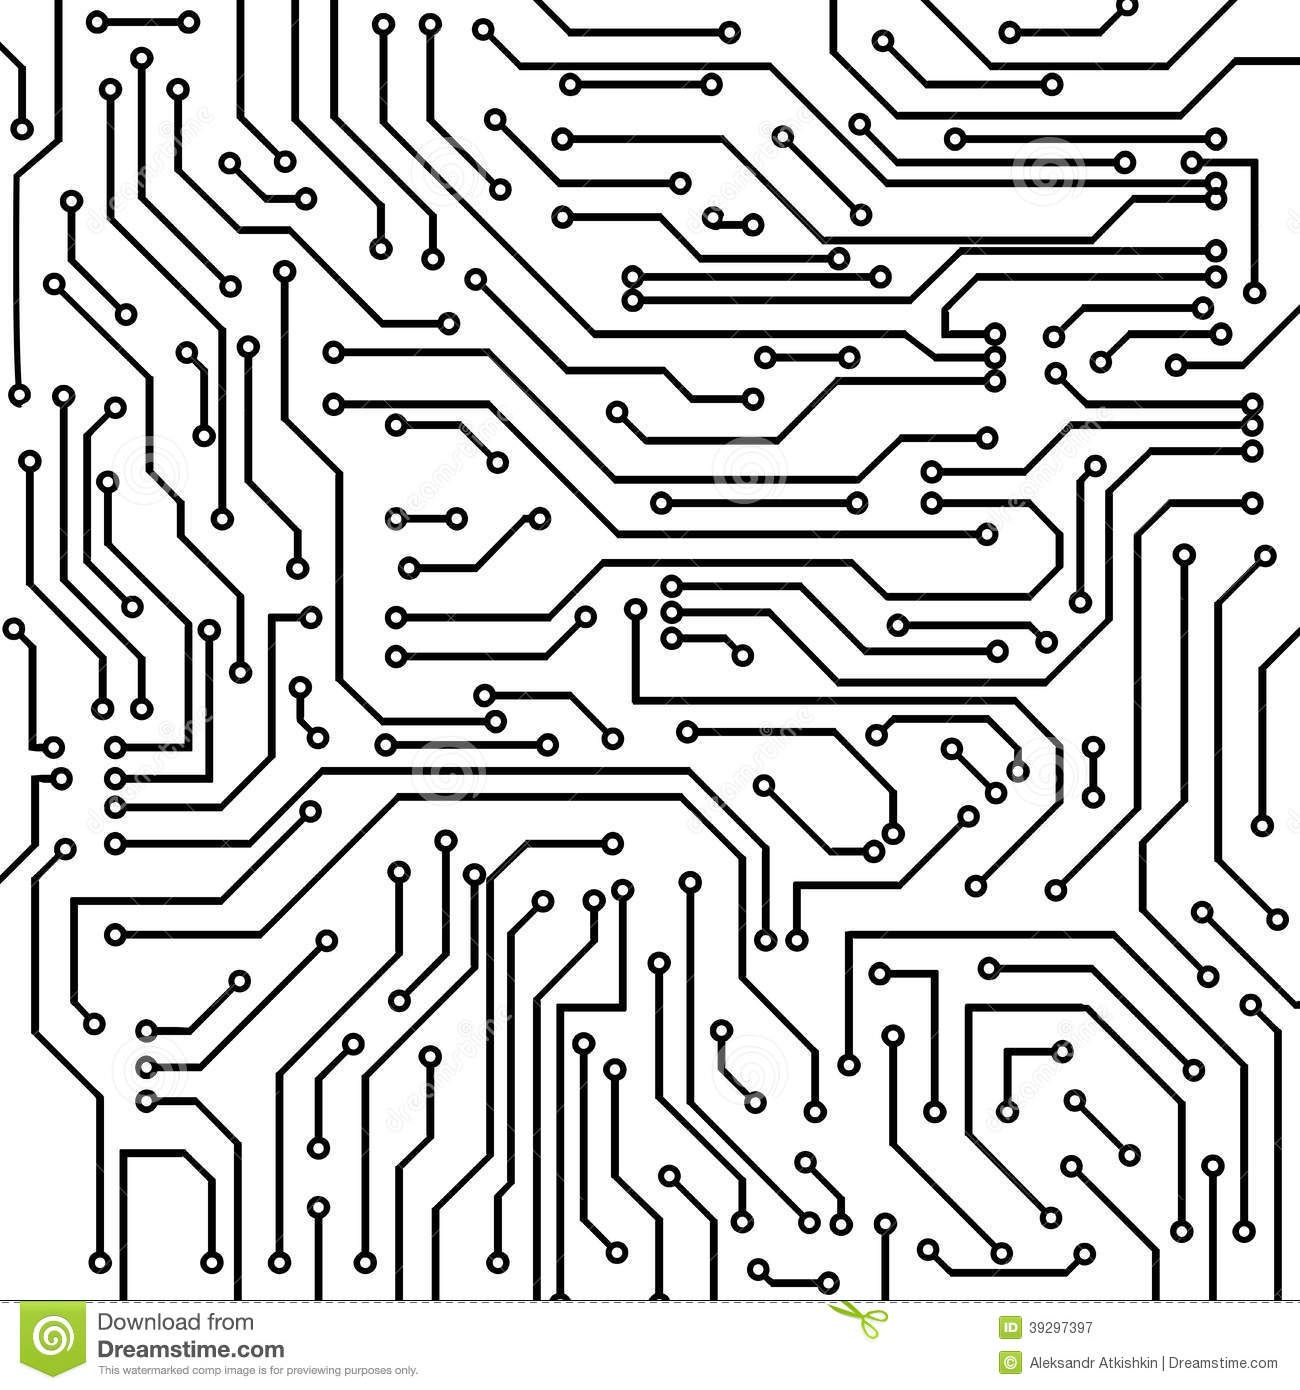 small resolution of computer chip graphic google search circuit board design computer chip systems engineering